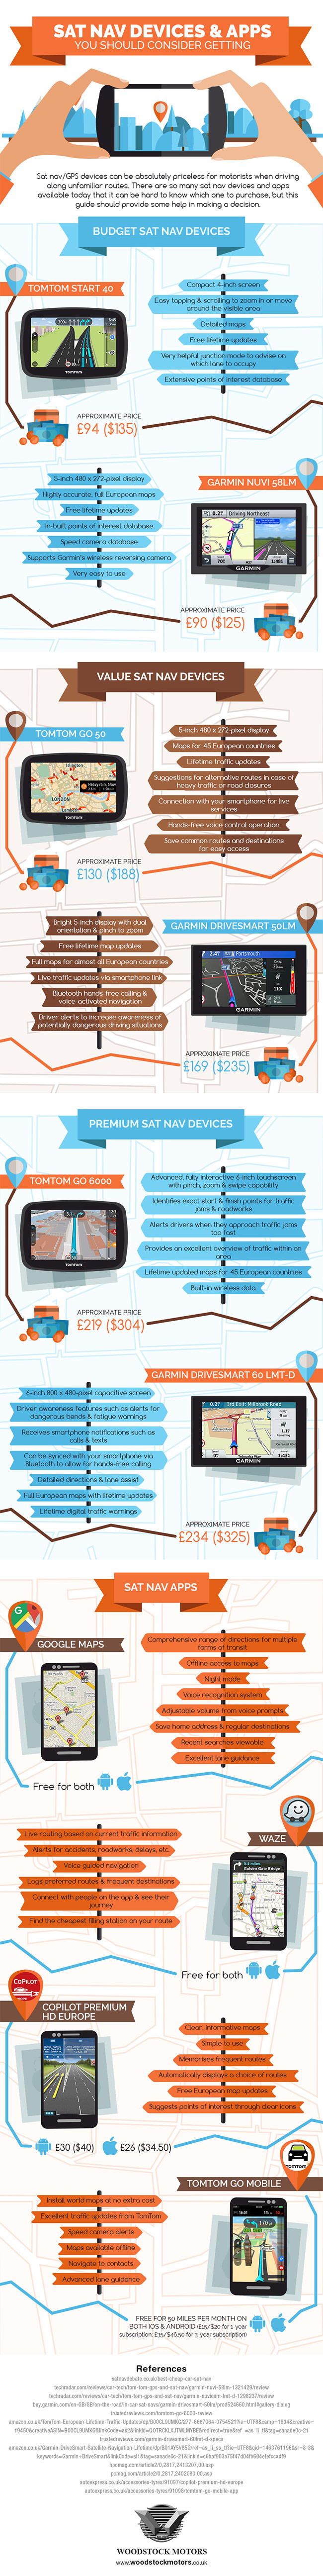 gps-devices-apps-you-should-consider-getting-infographic